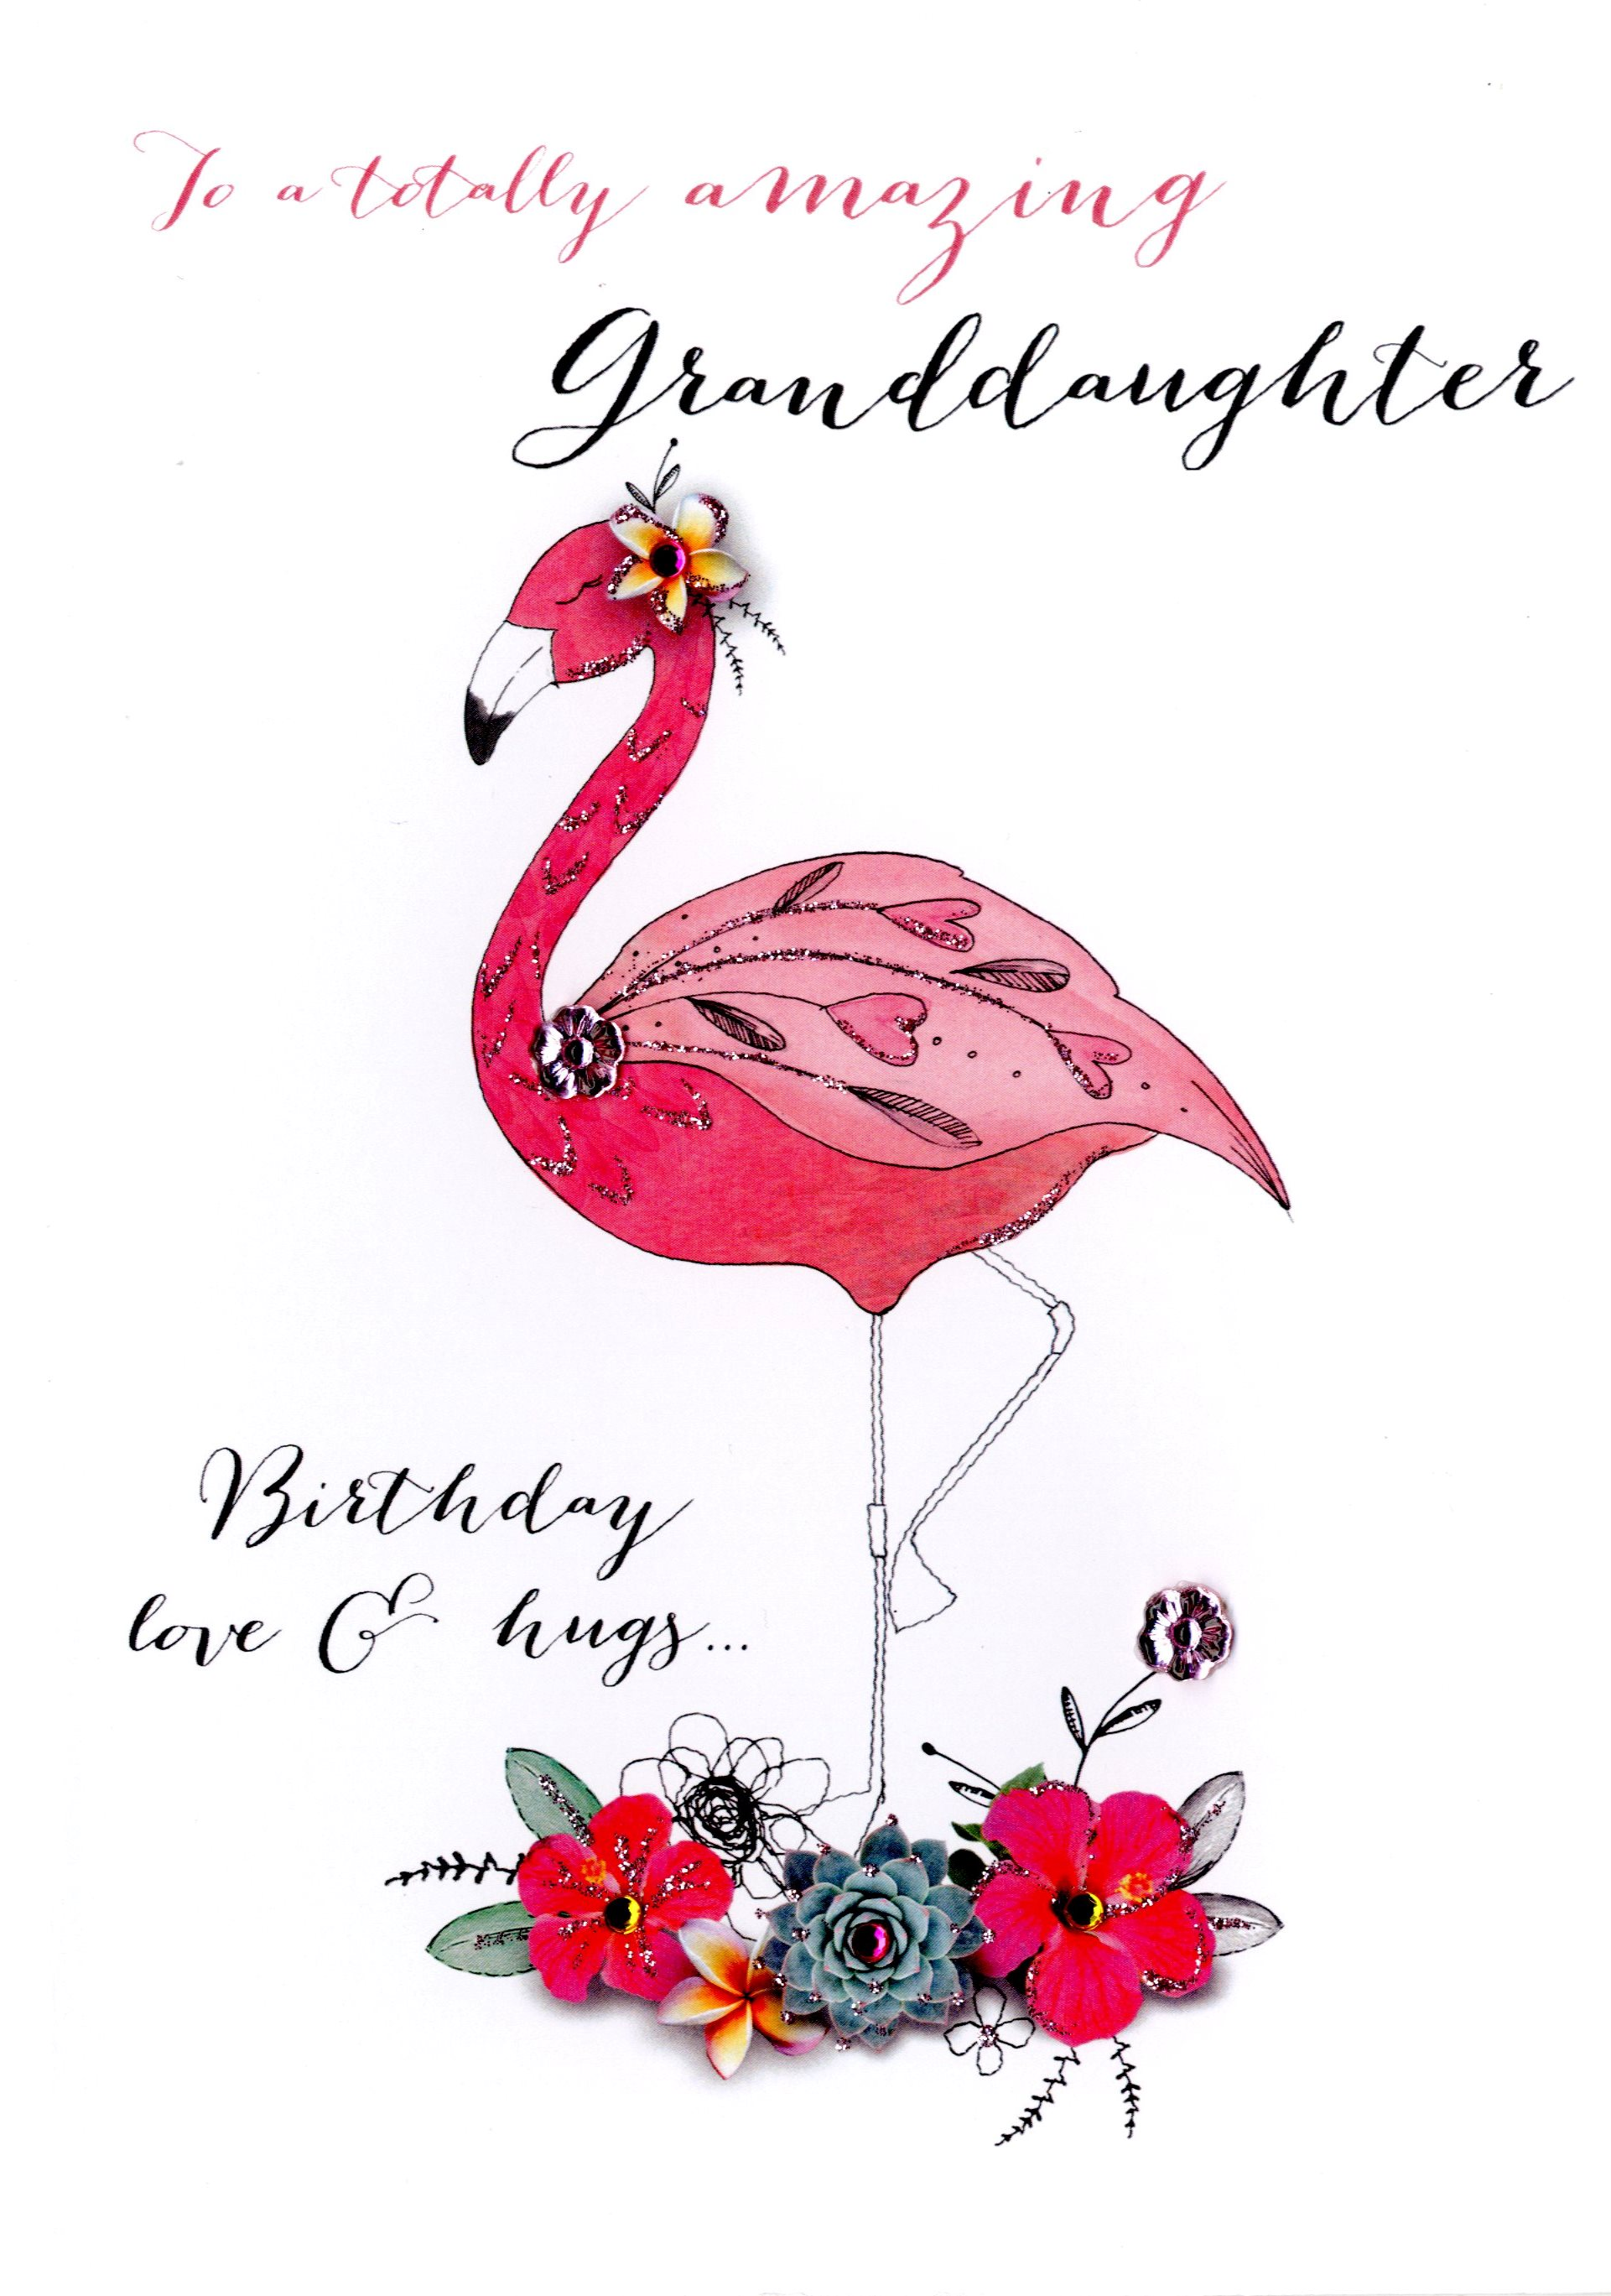 Amazing granddaughter birthday embellished greeting card cards amazing granddaughter birthday embellished greeting card bookmarktalkfo